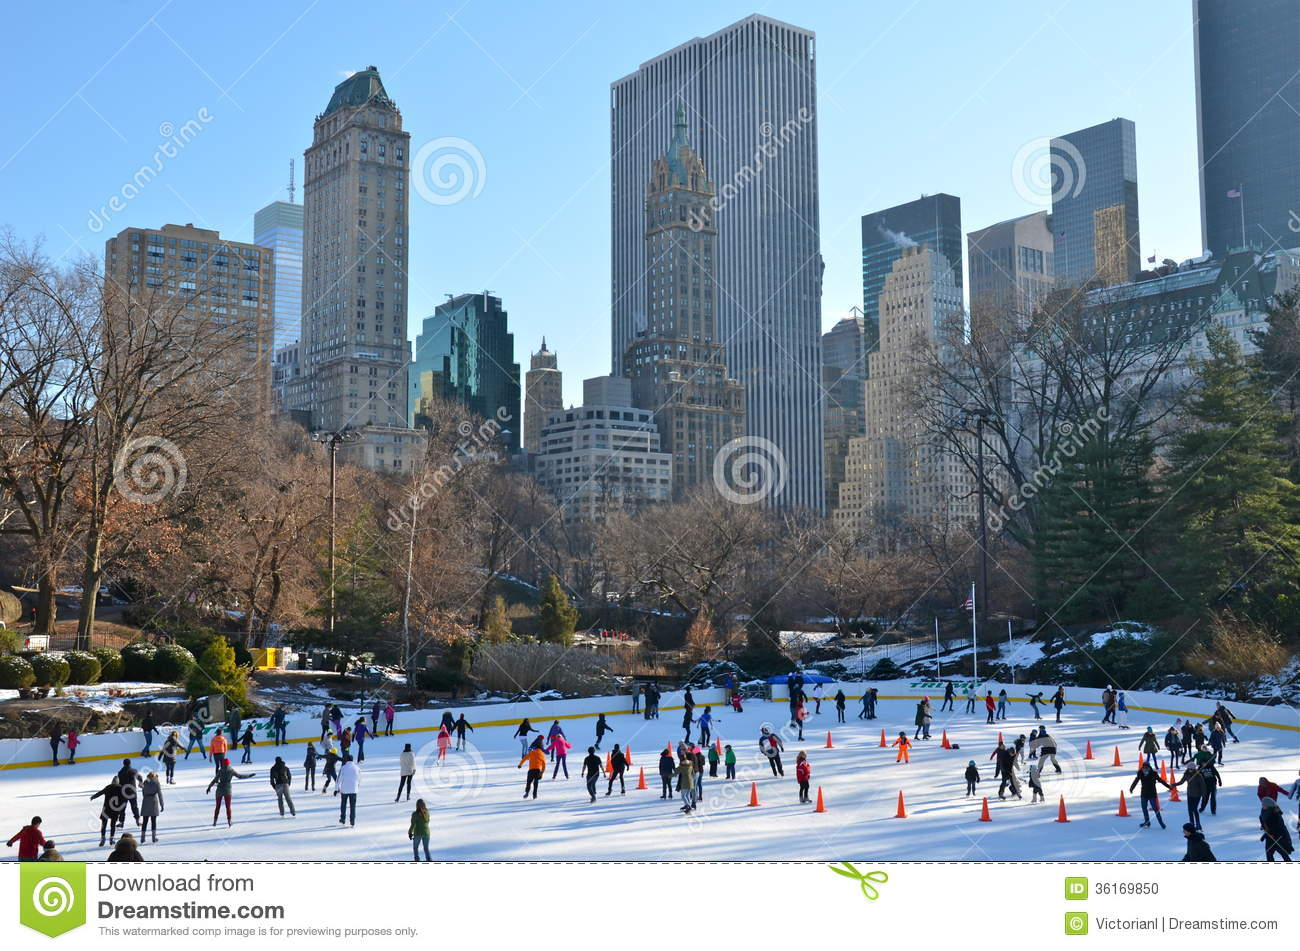 weihnachten im central park new york stockfoto bild. Black Bedroom Furniture Sets. Home Design Ideas